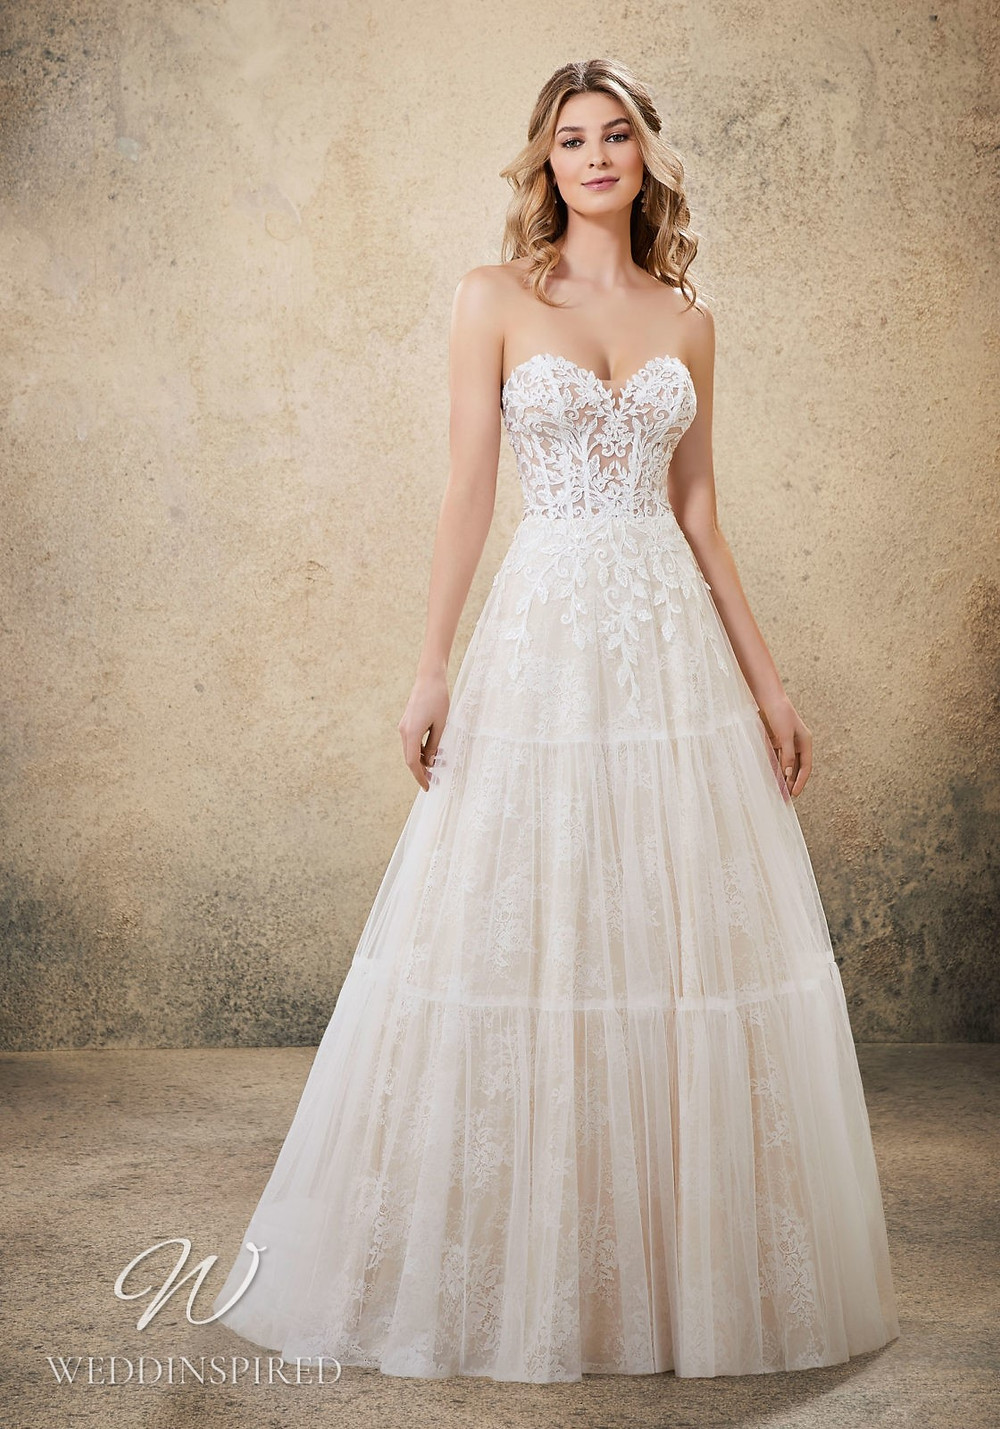 A Madeline Gardner blush strapless lace A-line wedding dress